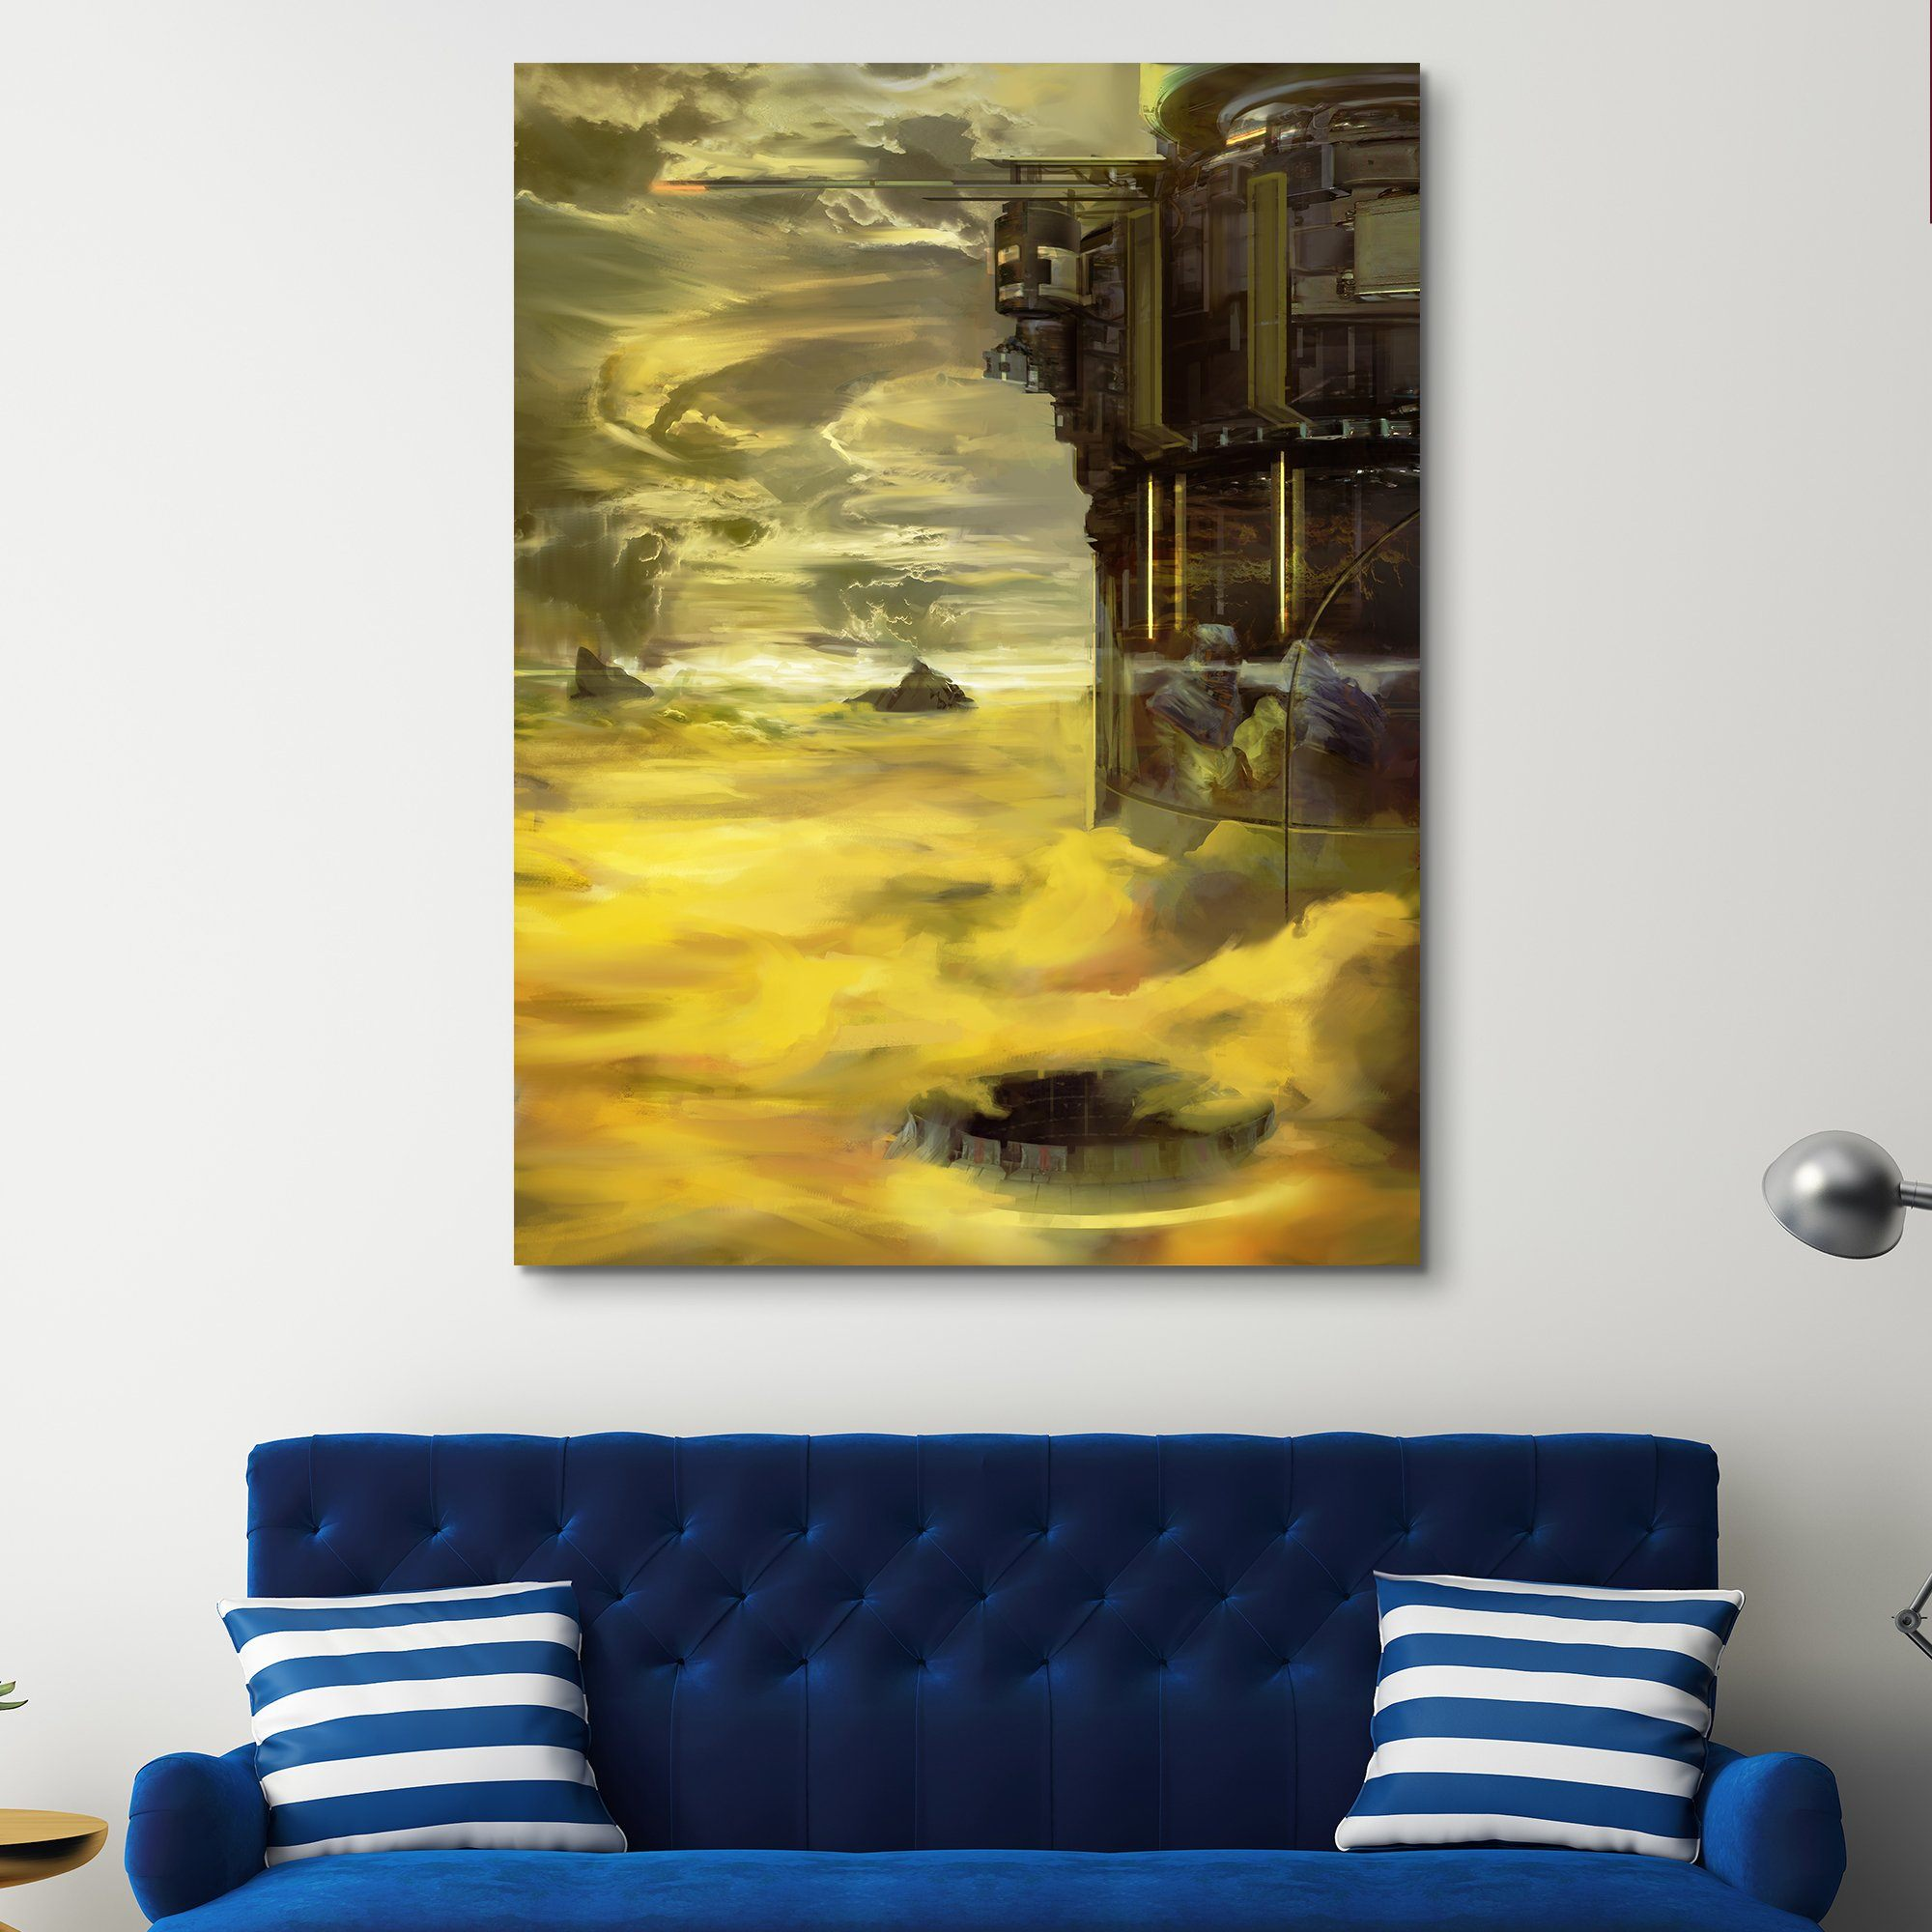 Voyages of Exploration - Venus wall art